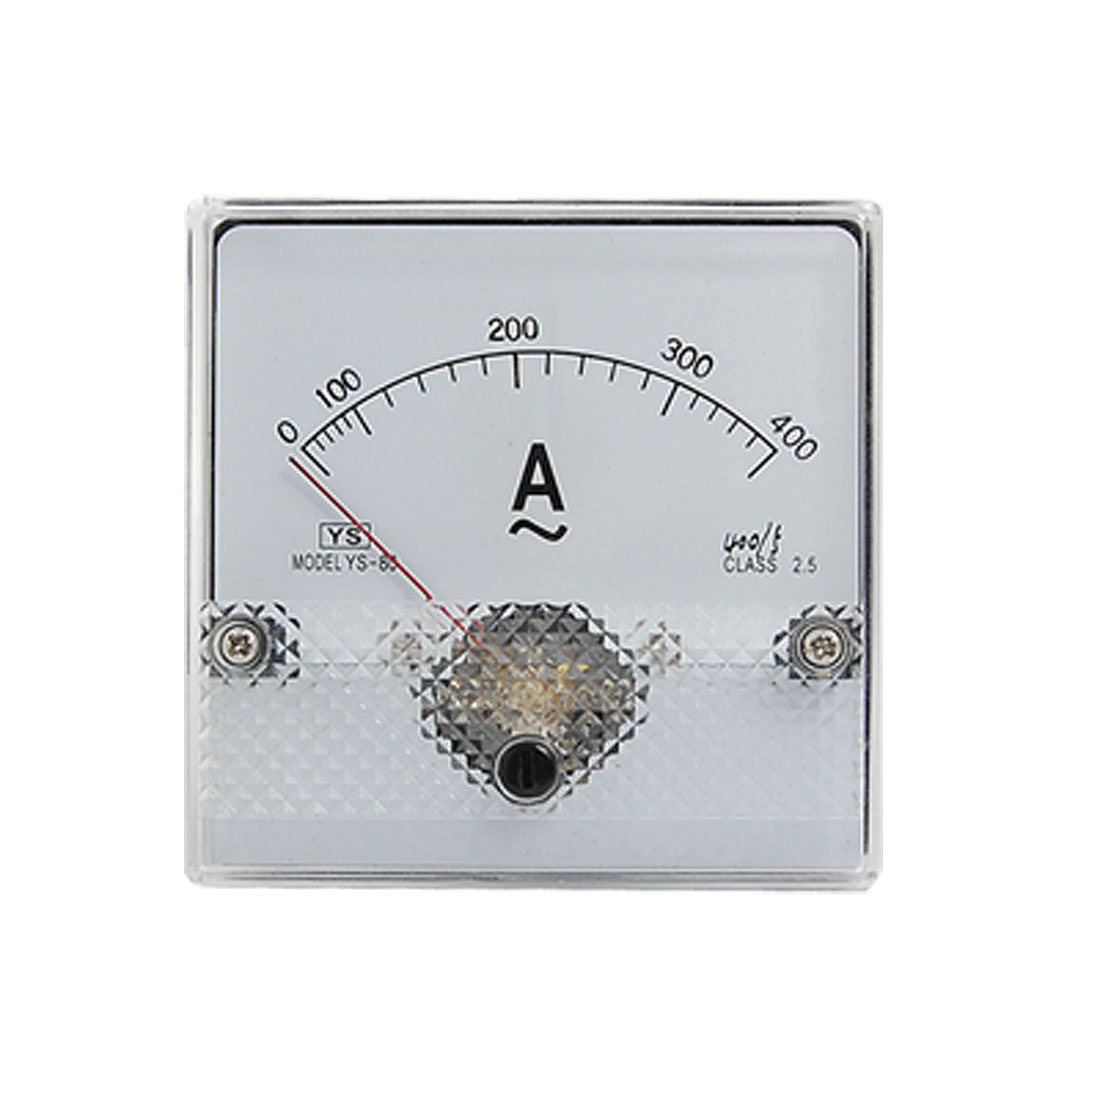 AC 0-400A Plastic Housed Analog Panel Meter Ammeter YS-80